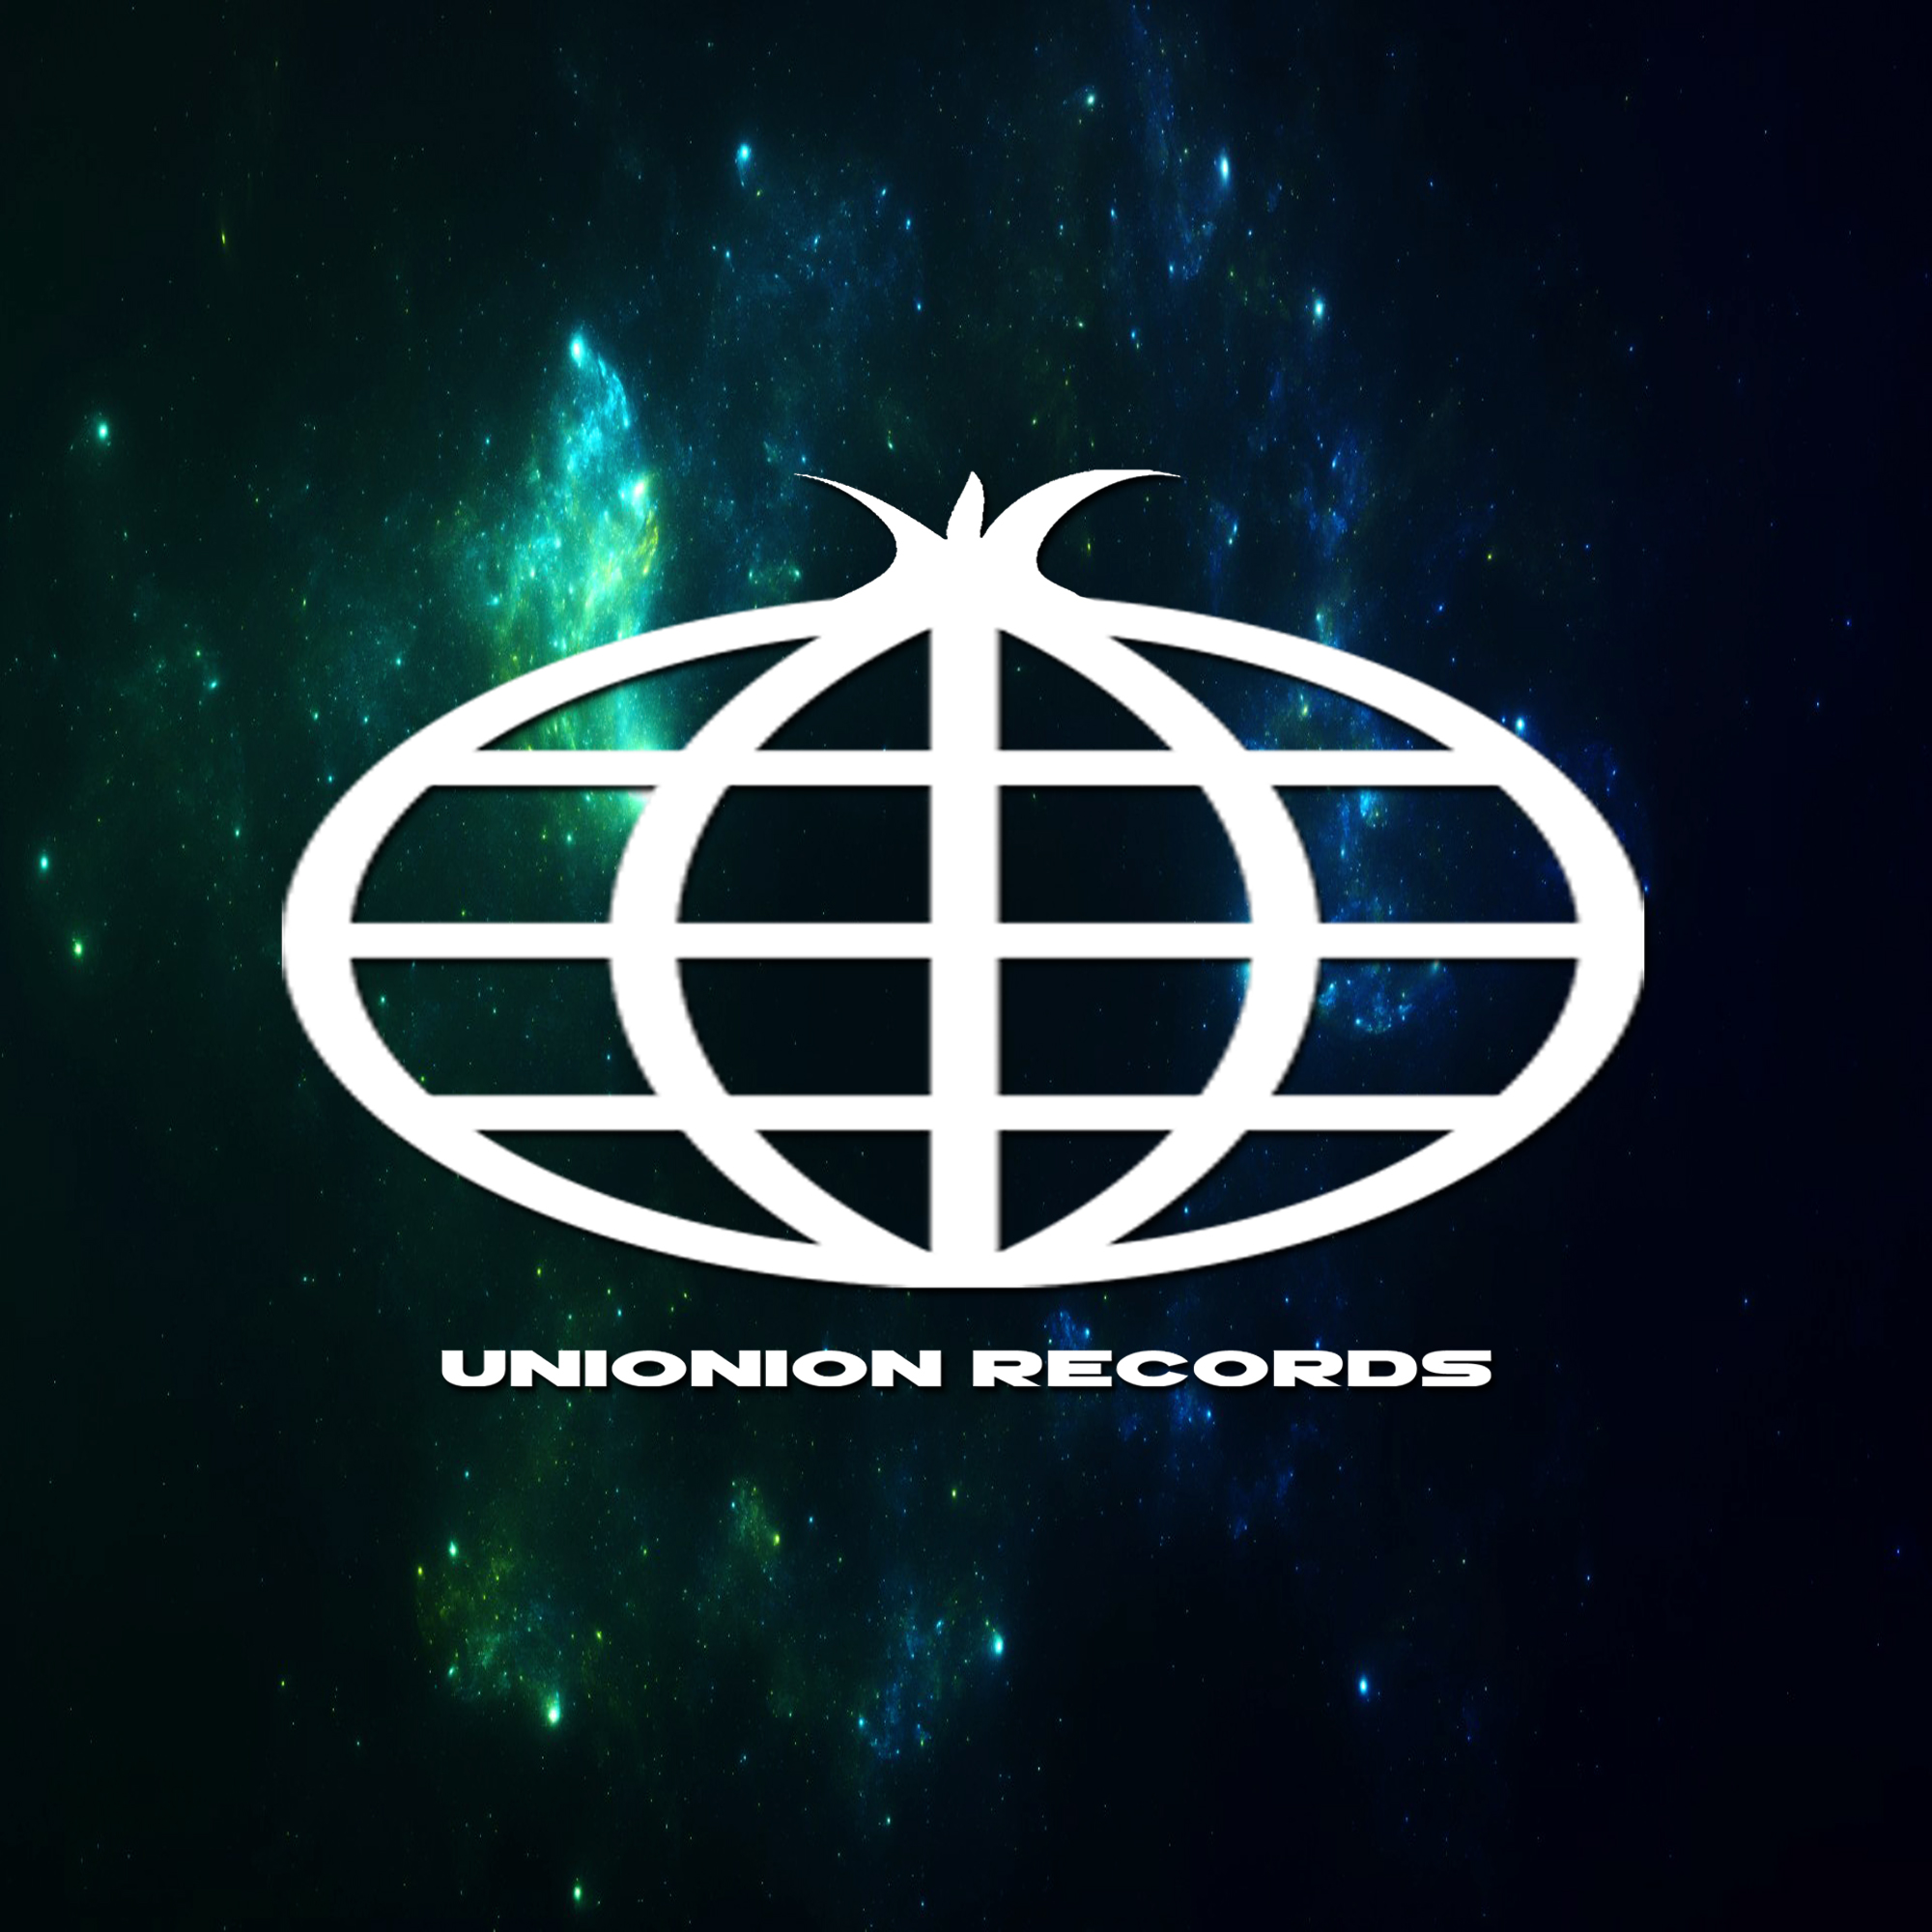 Unionion Records